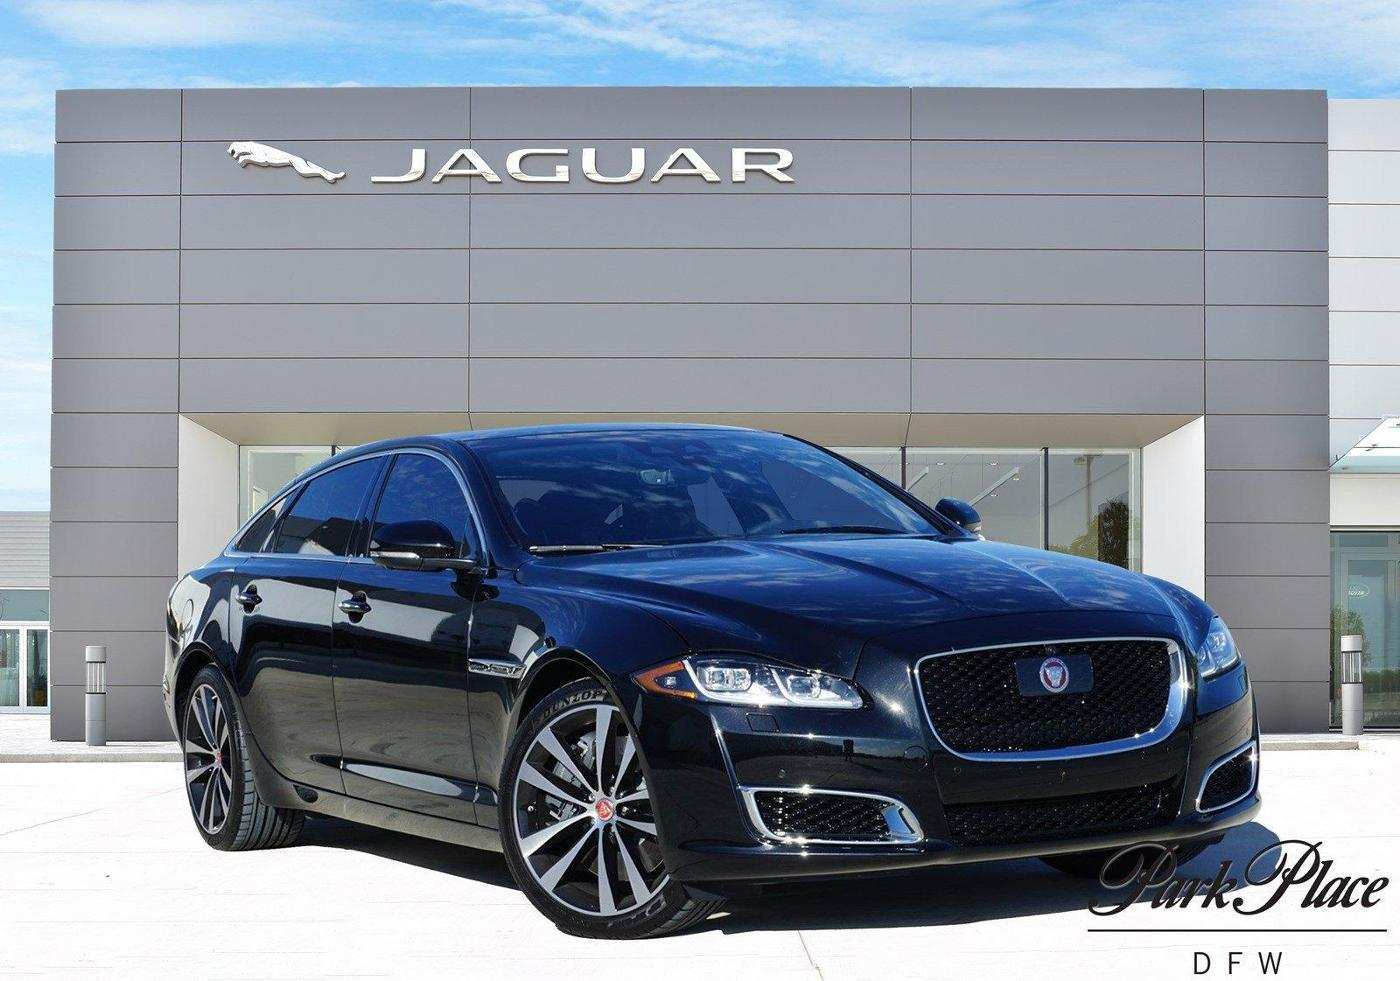 59 New 2019 Jaguar Xj 50 Pricing for 2019 Jaguar Xj 50